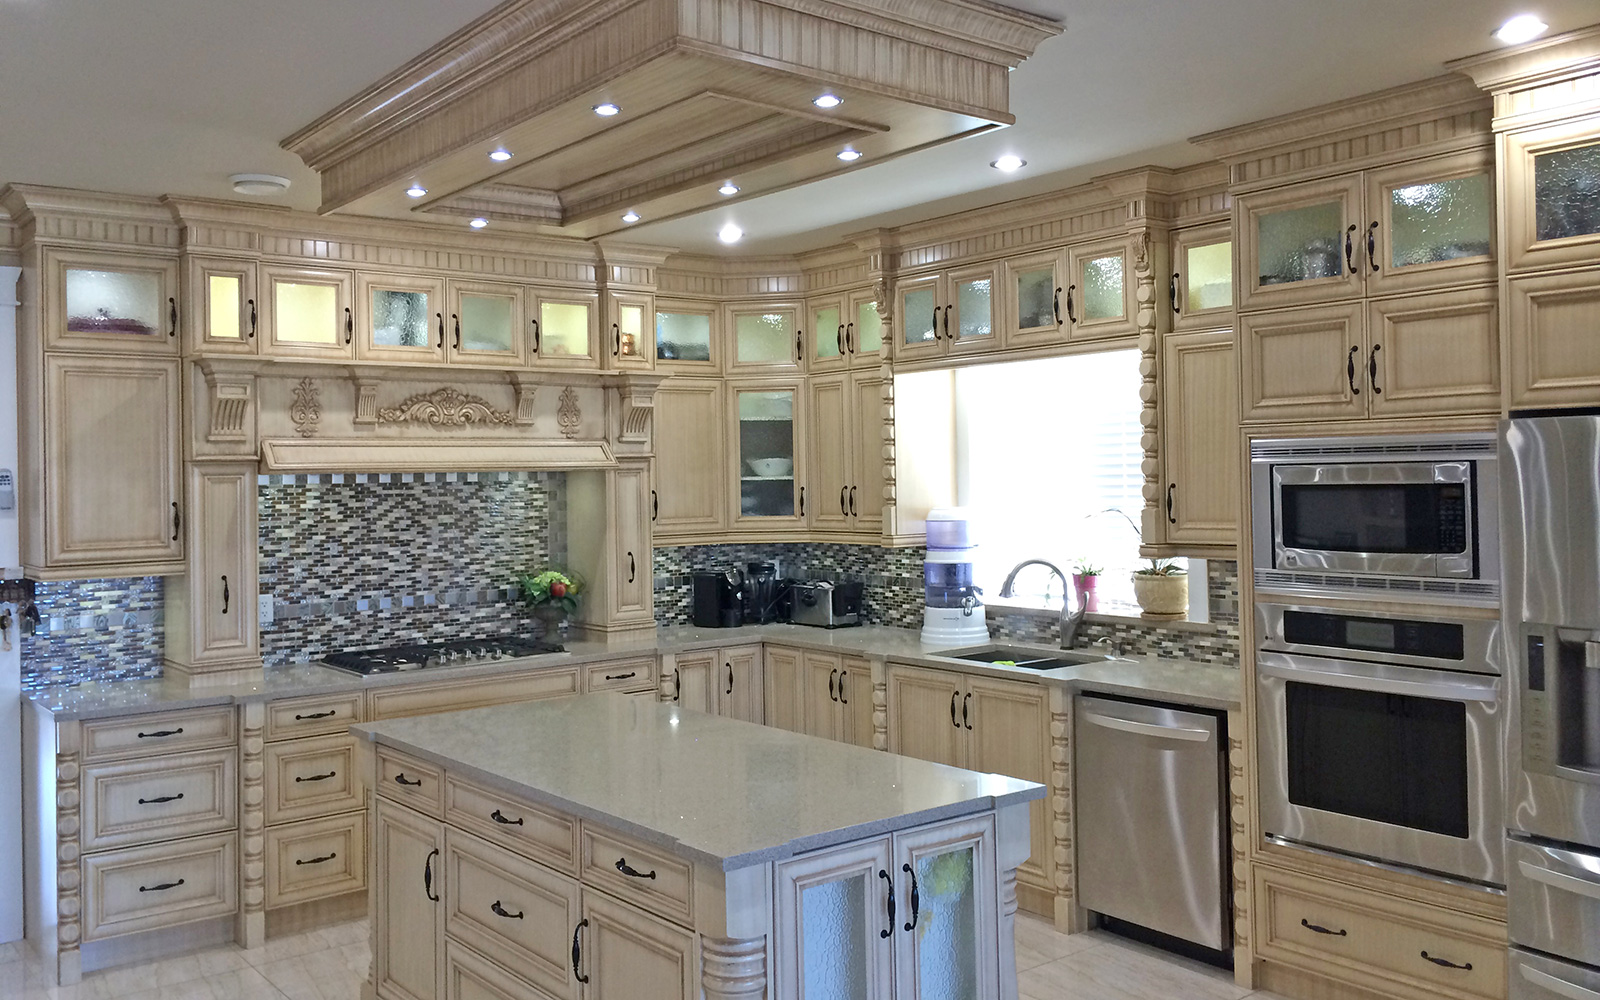 Calgary custom kitchen cabinets ltd countertops for Latest kitchen cabinet design